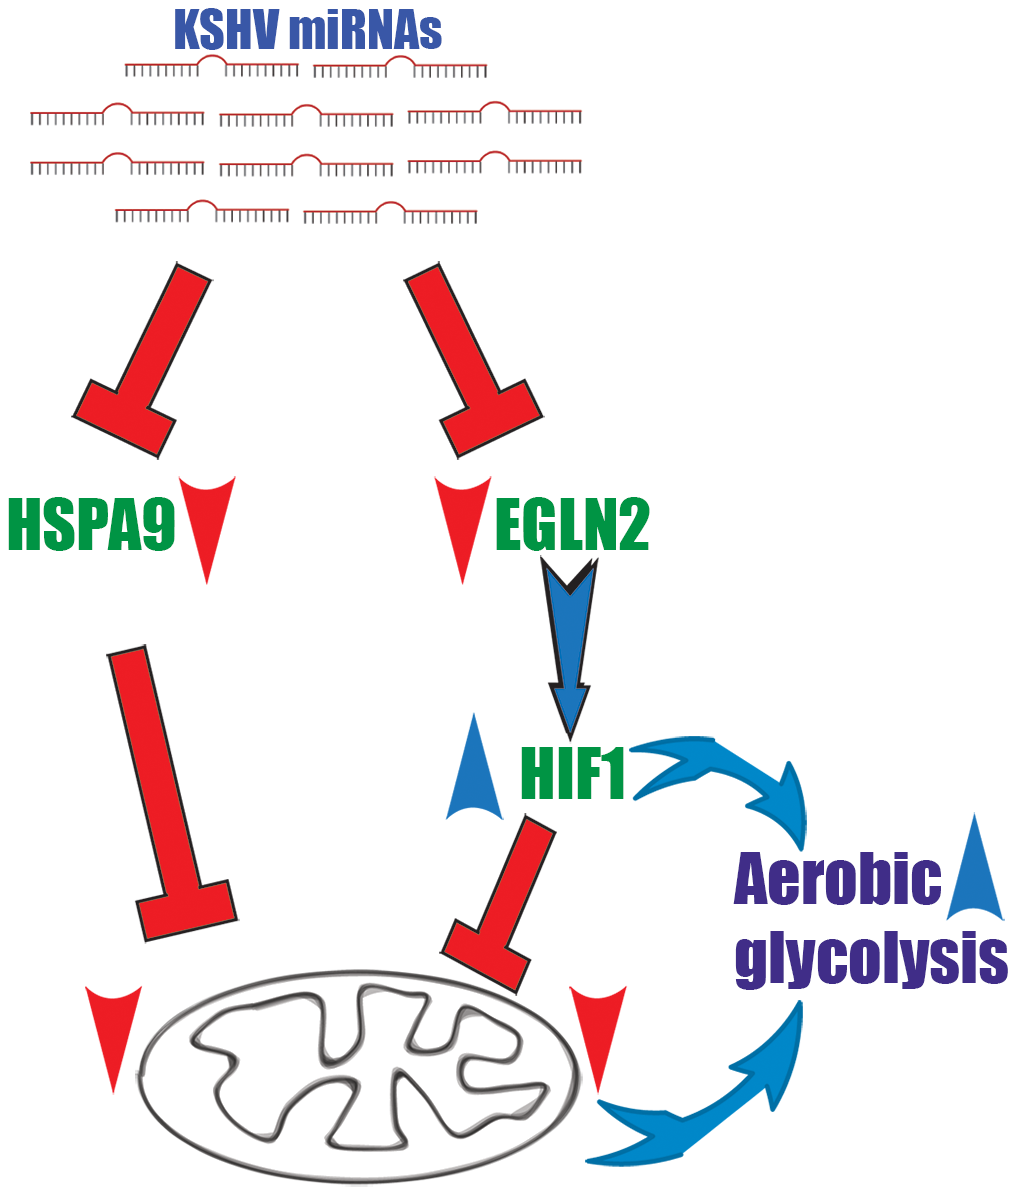 A two-armed mechanism model by which KSHV changes cellular energy metabolism.